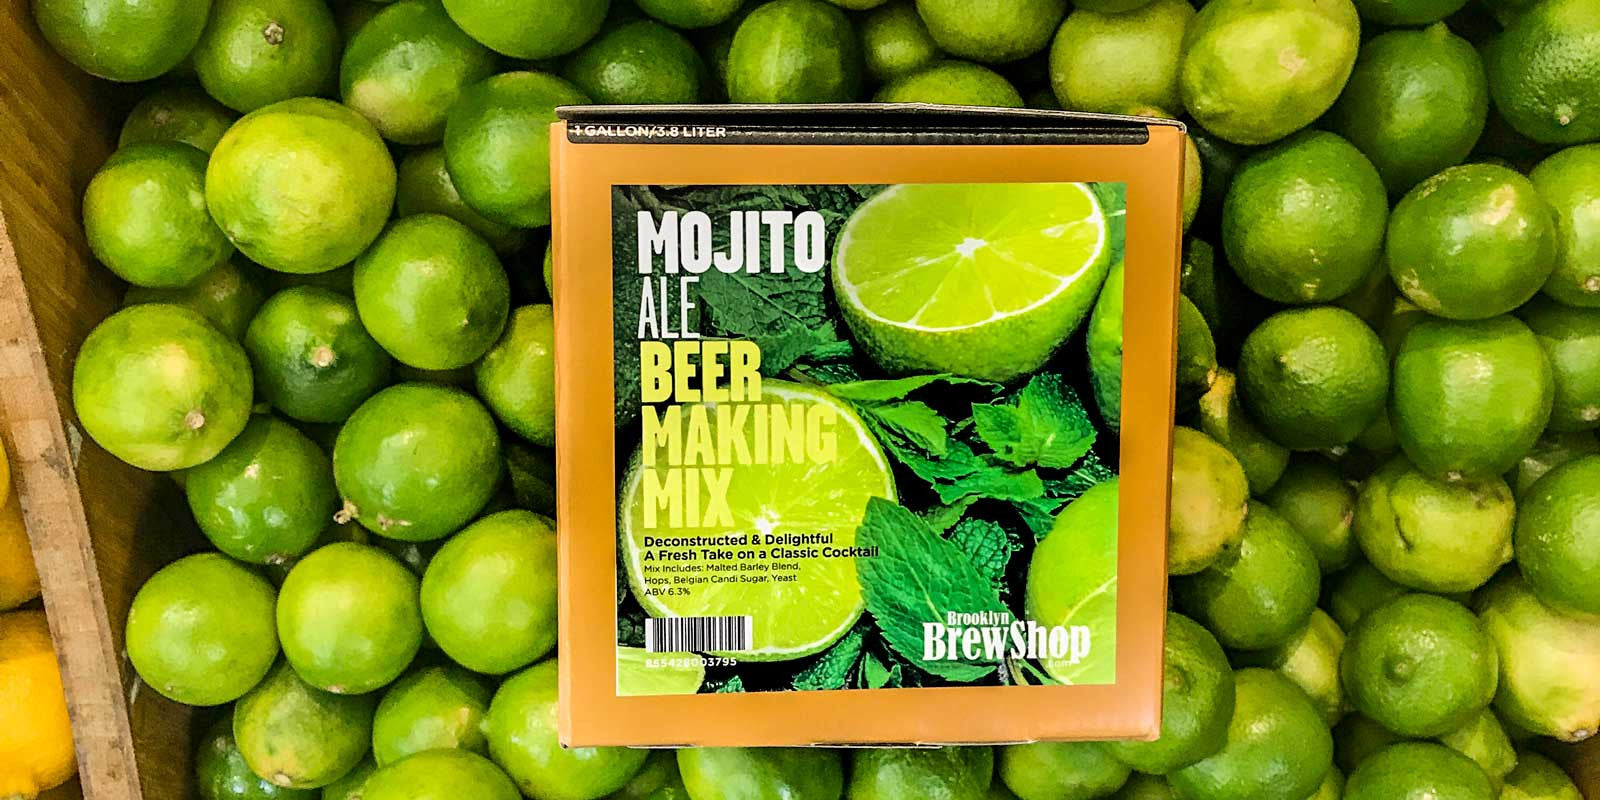 Mojito Ale Beer Making Mix